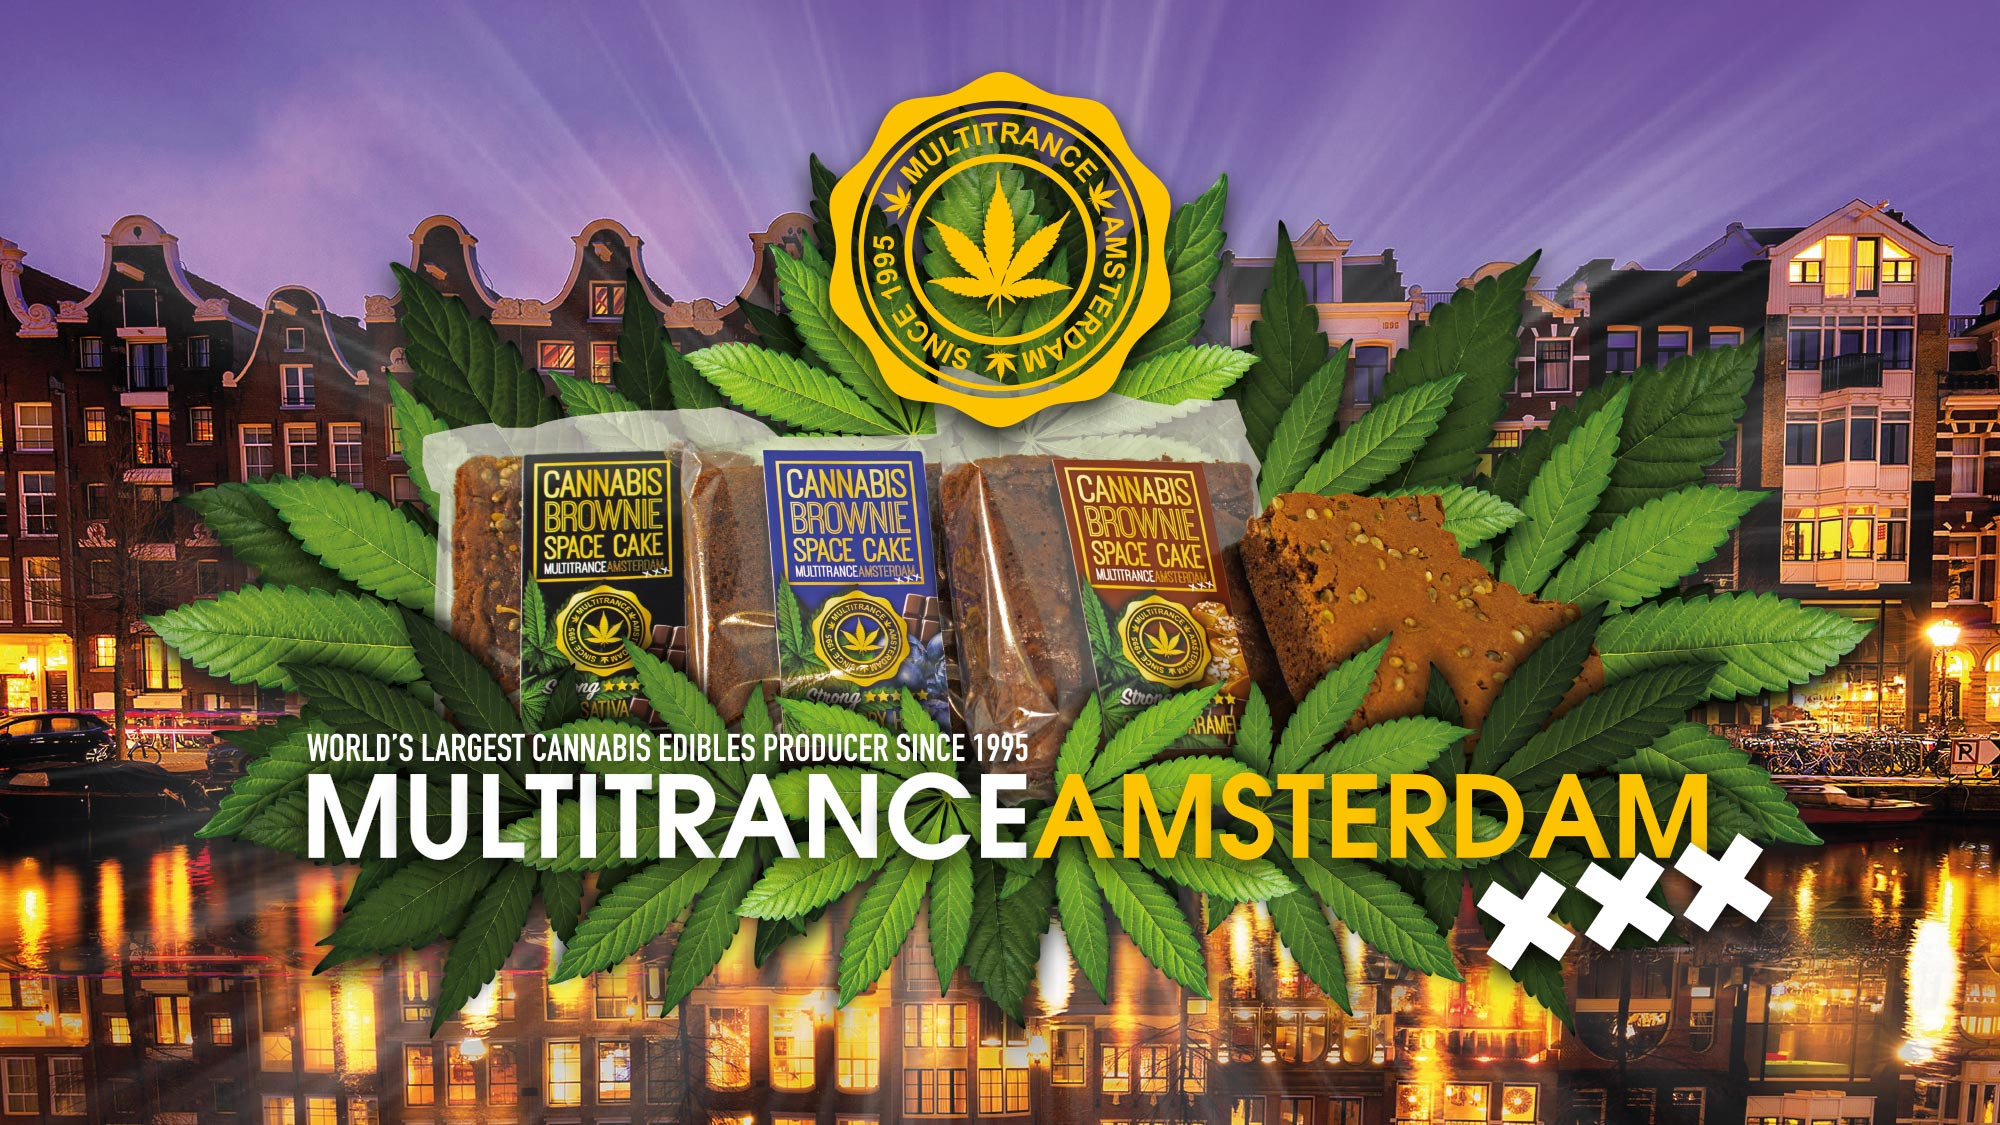 Multitrance logo displayed above cannabis brownies with an image of iconic Amsterdam city buildings in the background